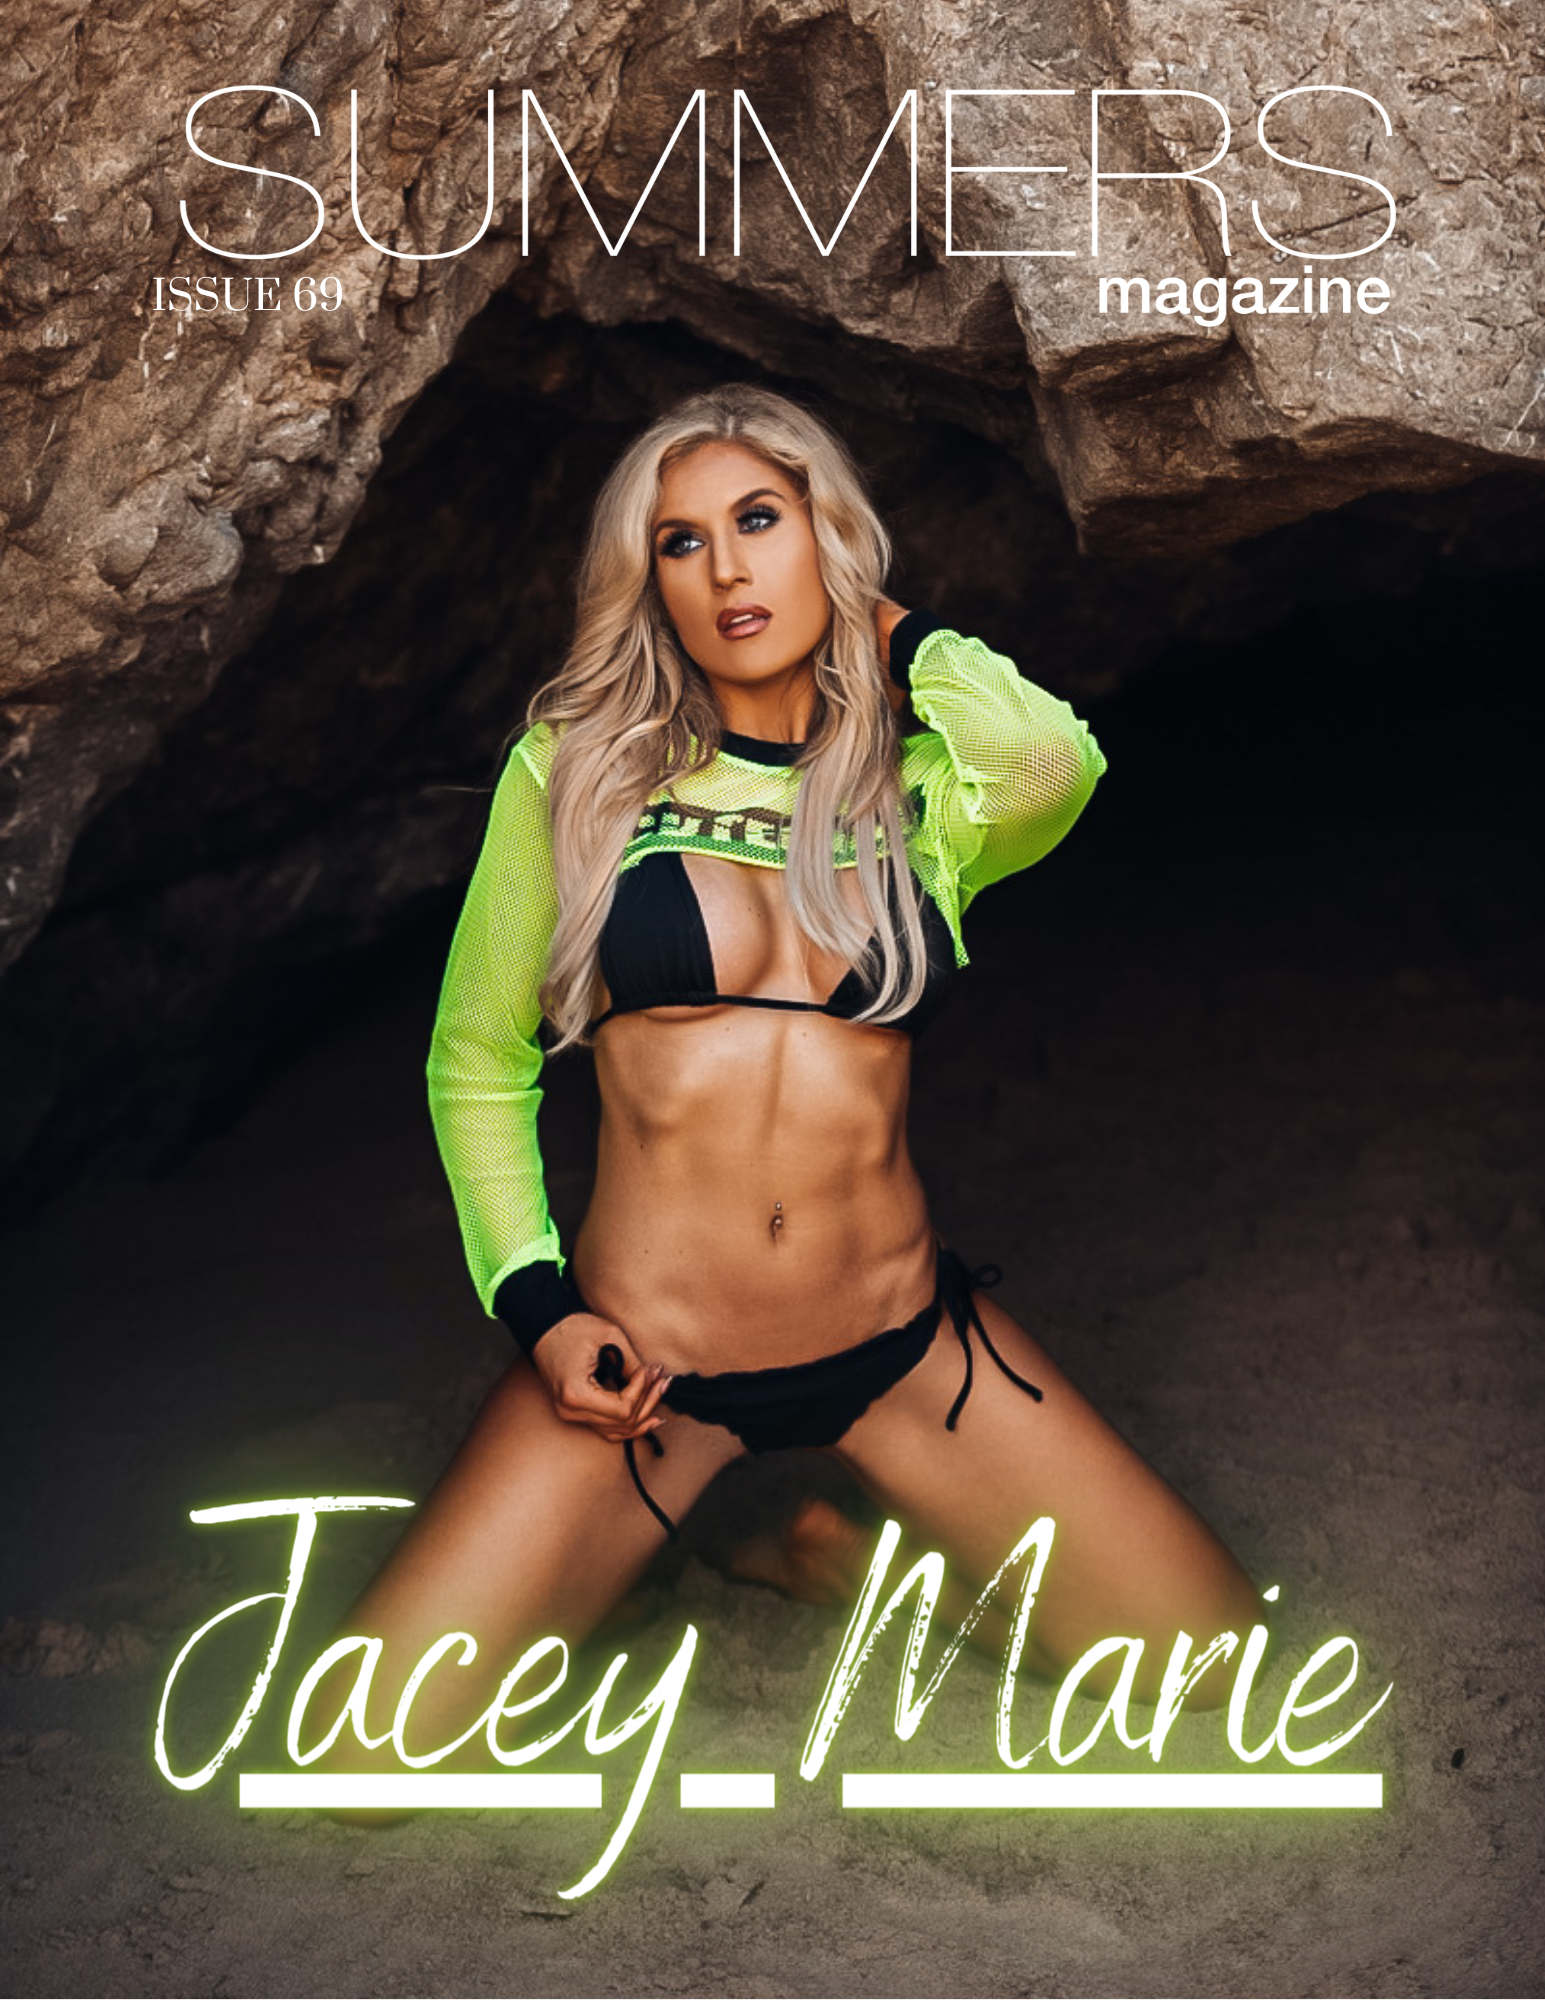 Summers Magazine Issue 69 Featuring Jacey Marie